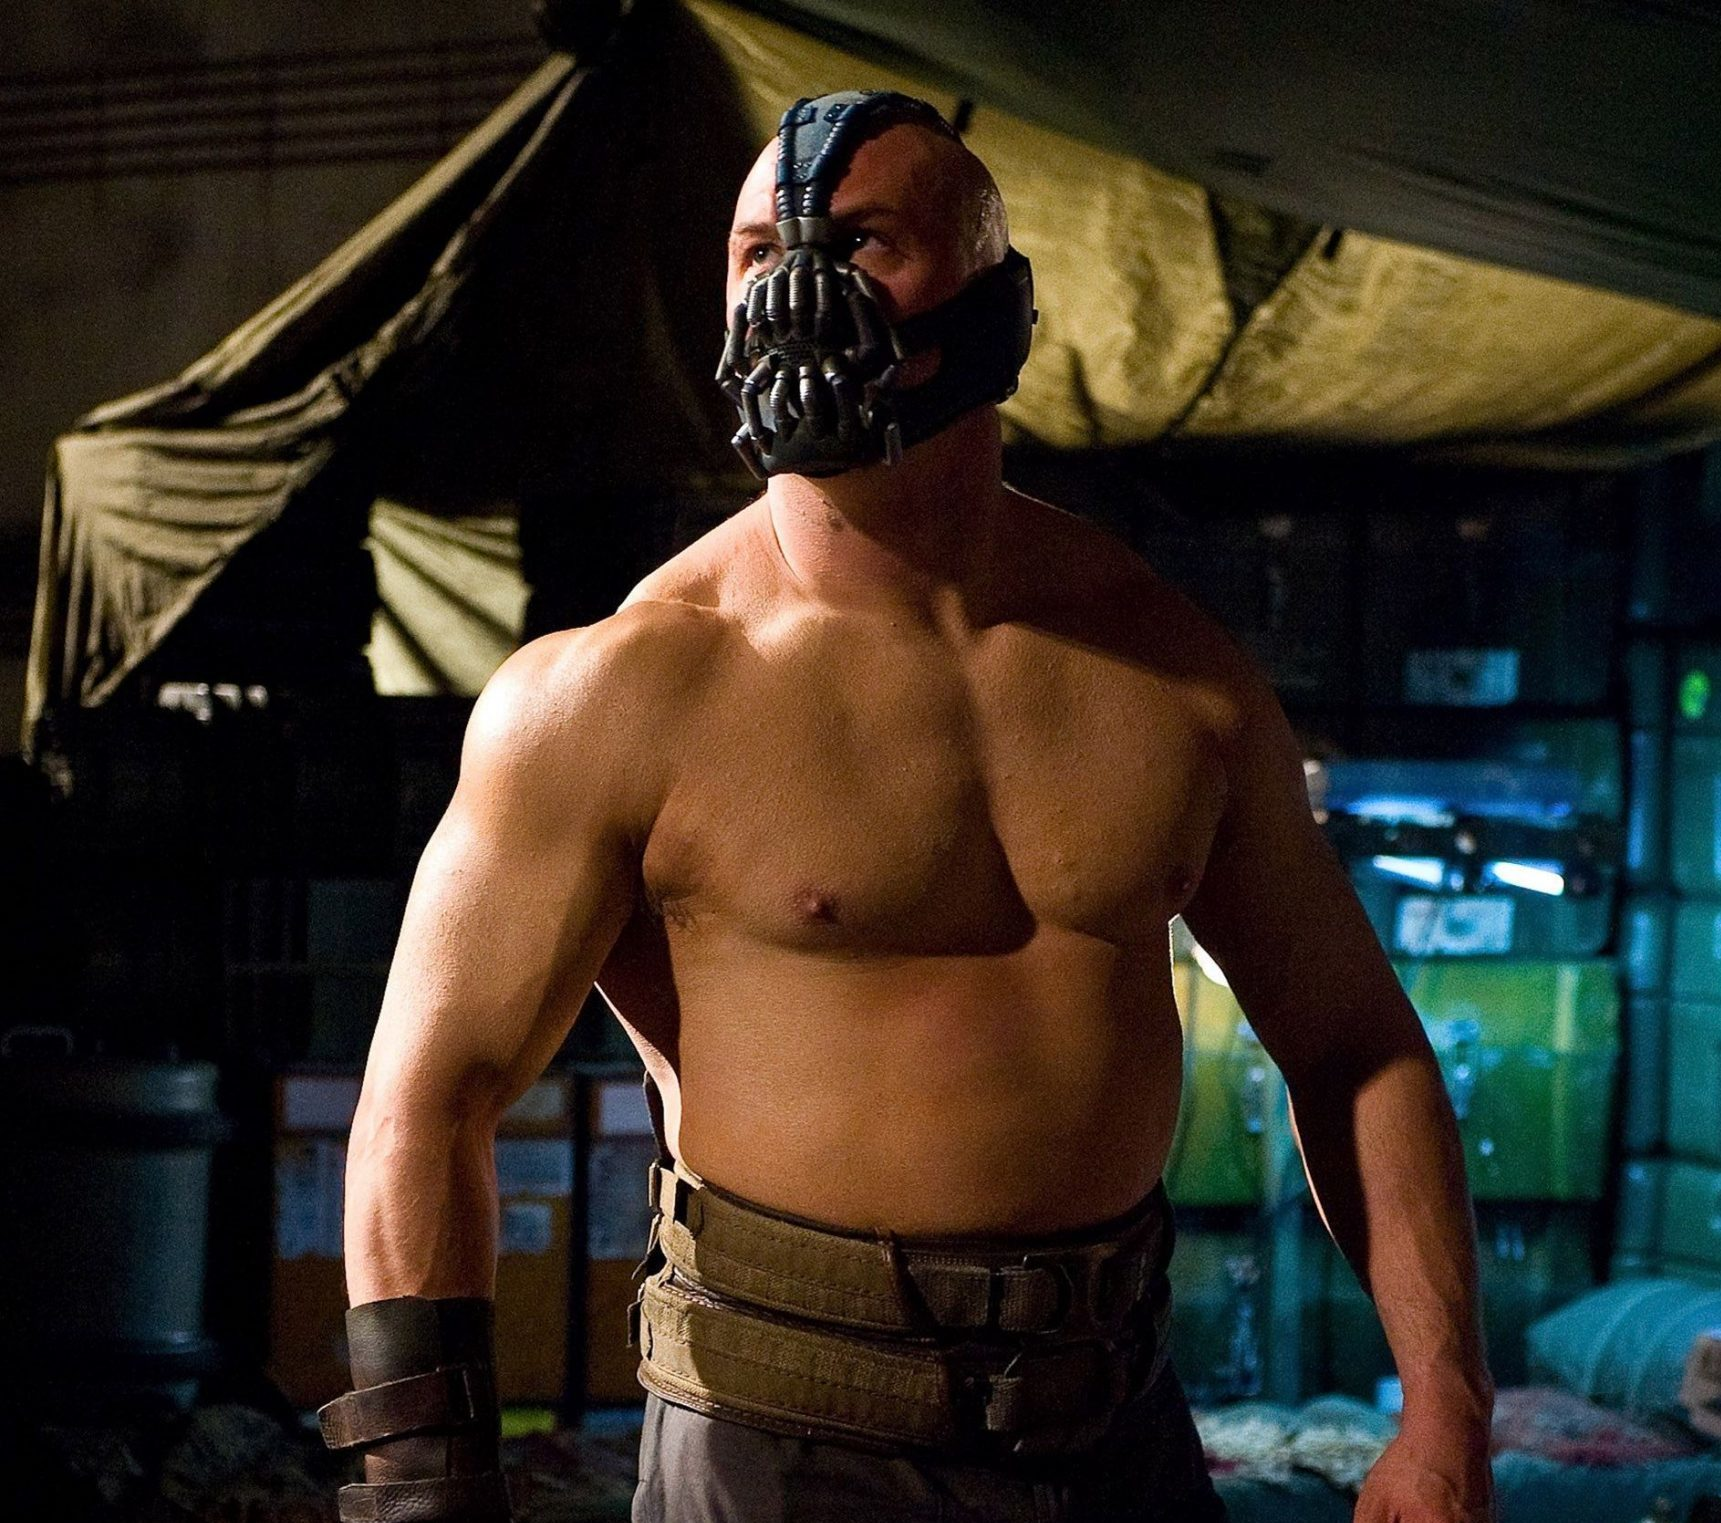 bane pod image 01 scaled e1611662508801 40 Things You Didn't Know About Tom Hardy